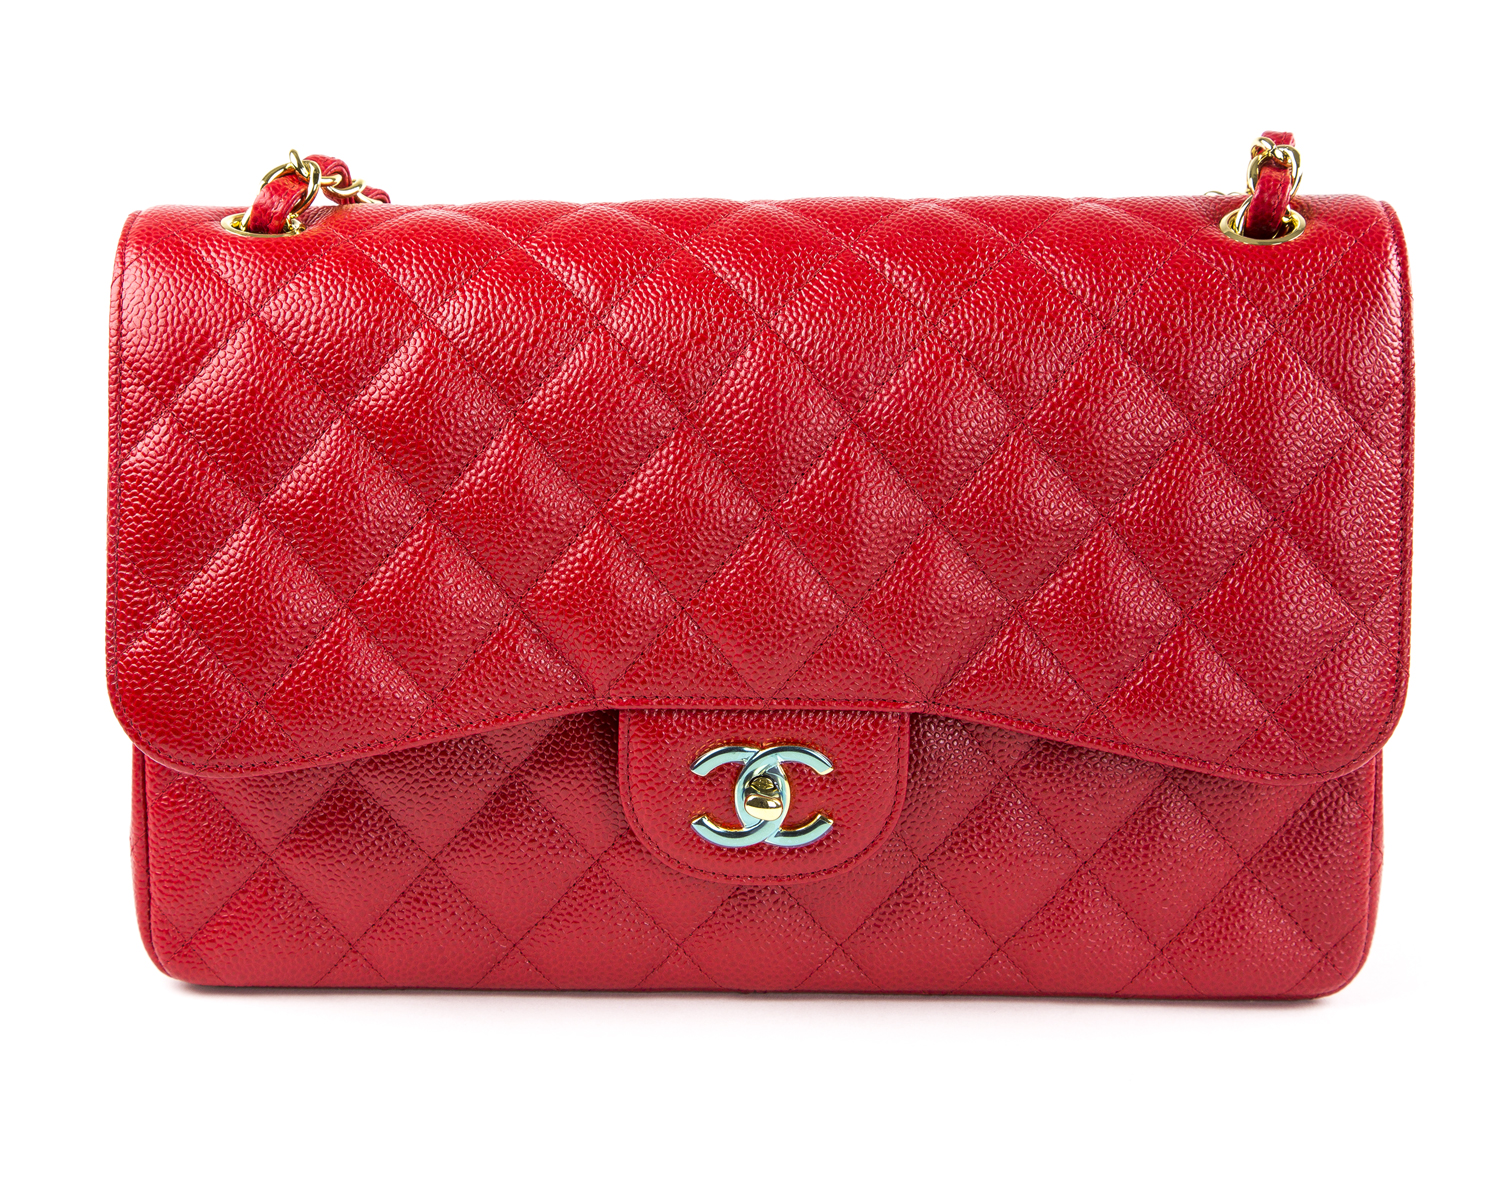 e2fccd87b6b6 CHANEL Red Caviar Leather Jumbo Classic Flap Bag Gold Hardware $6,200 NWOB